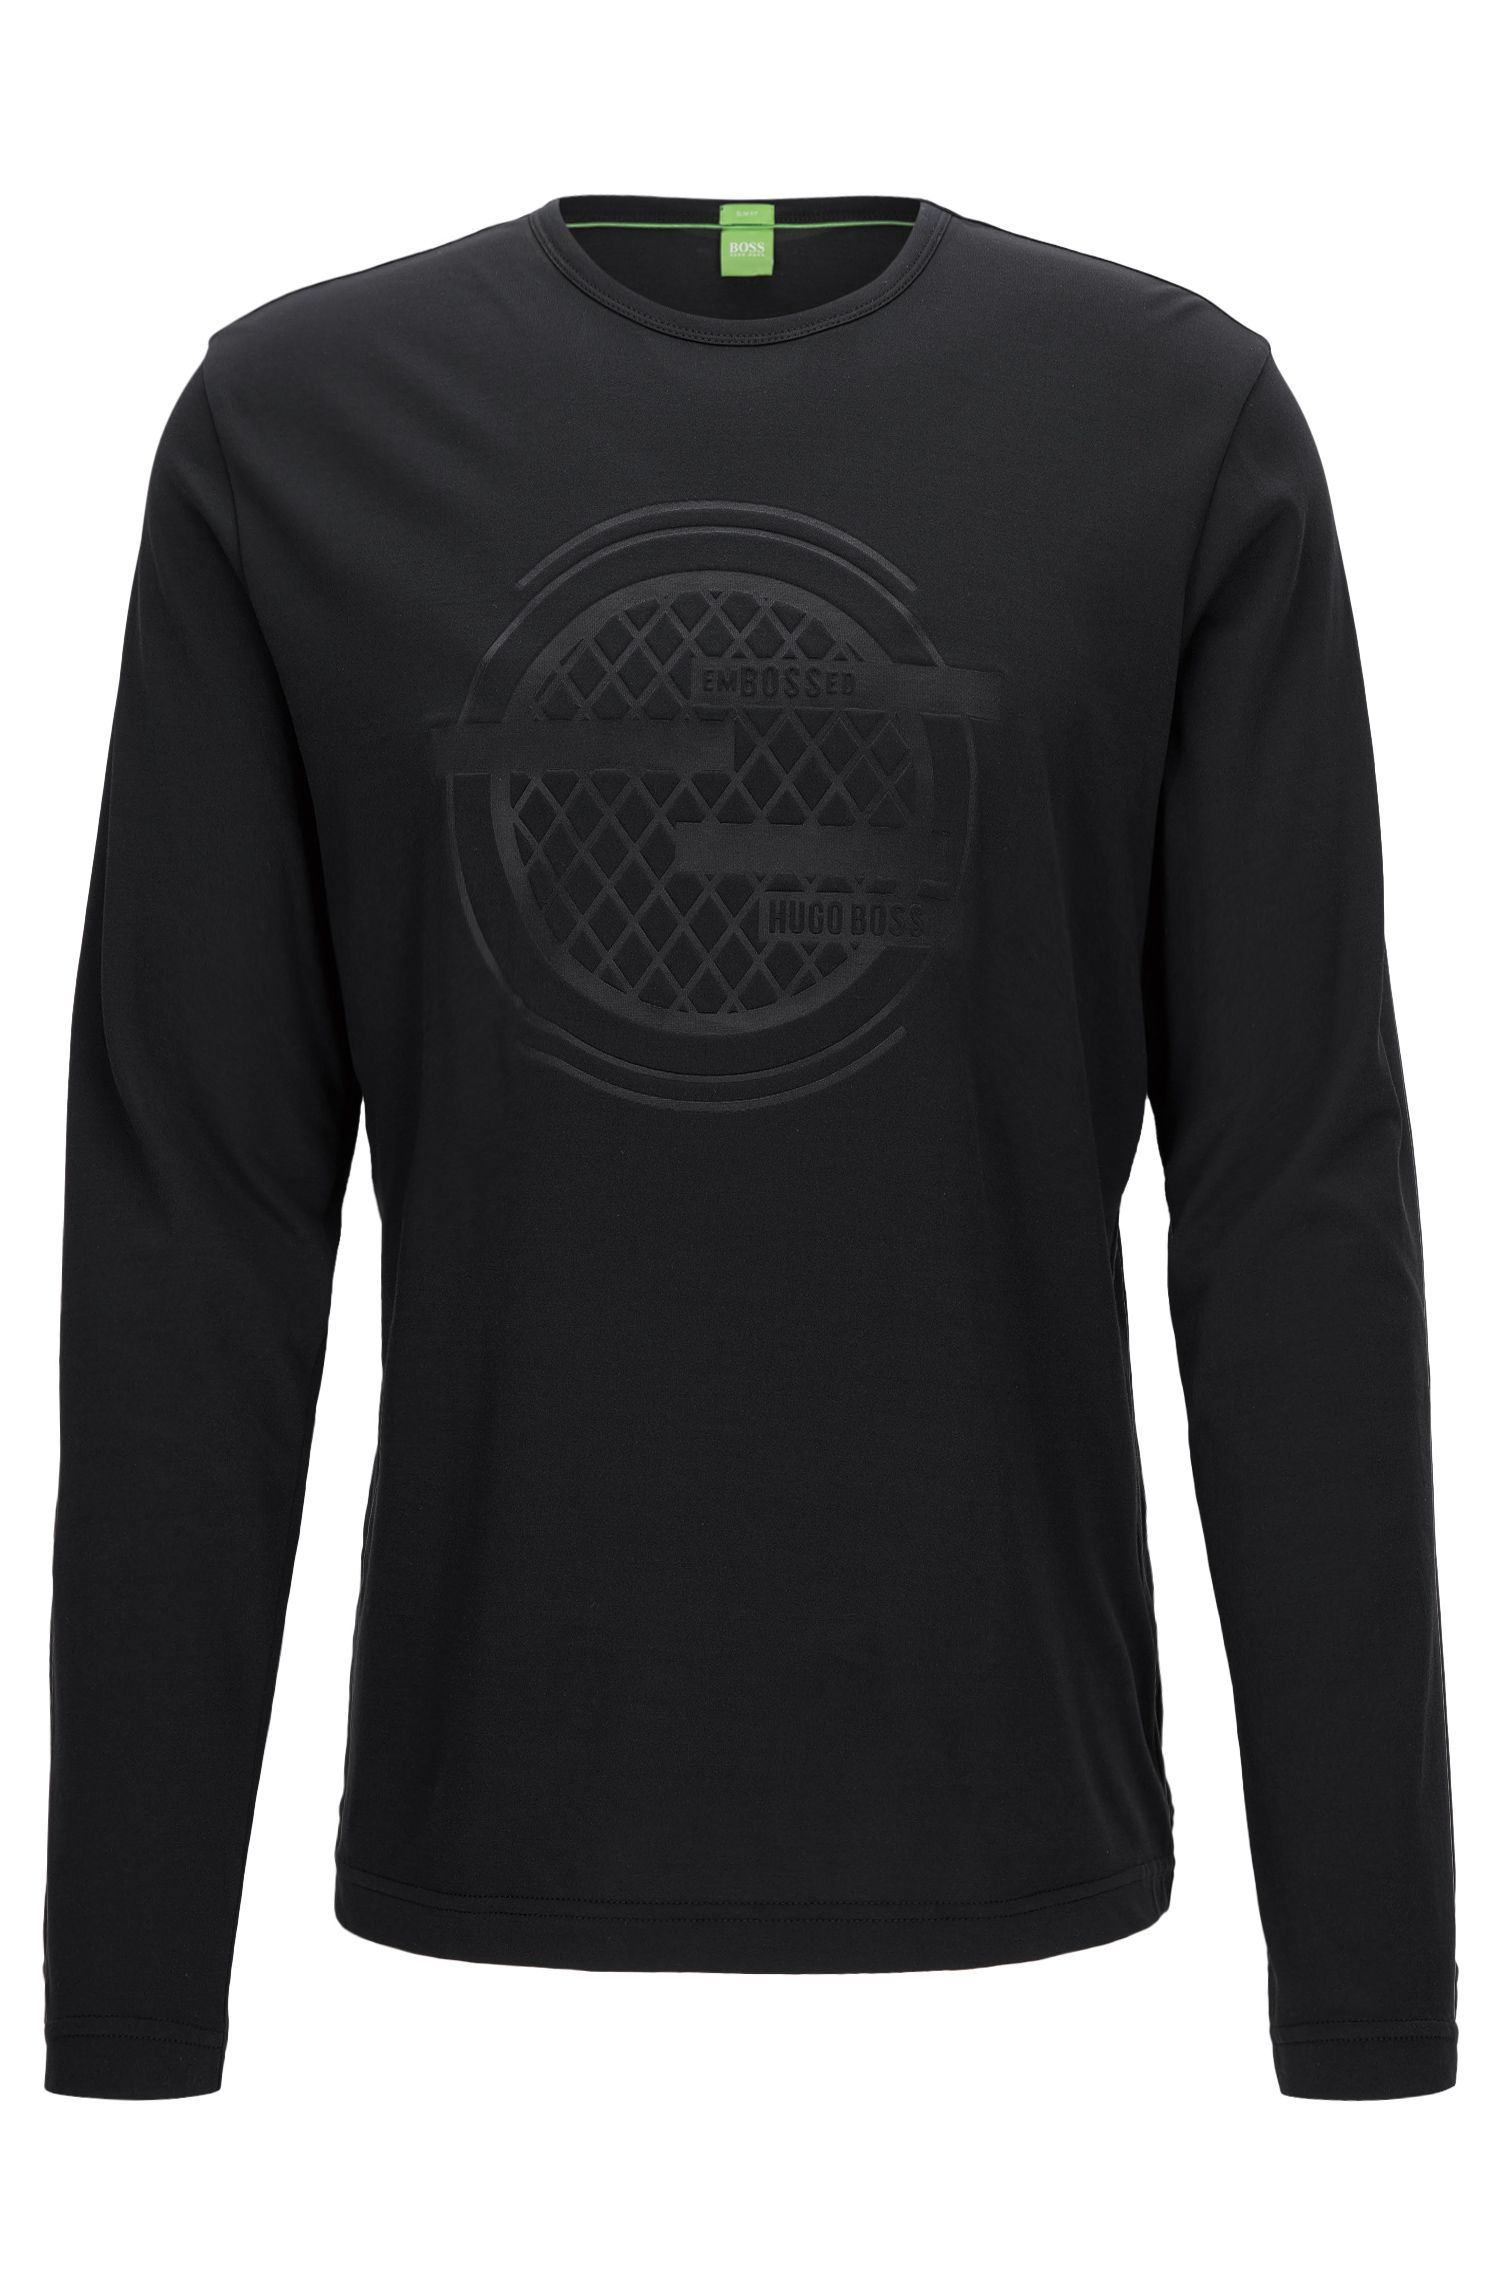 Long-sleeved T-shirt in a cotton mix